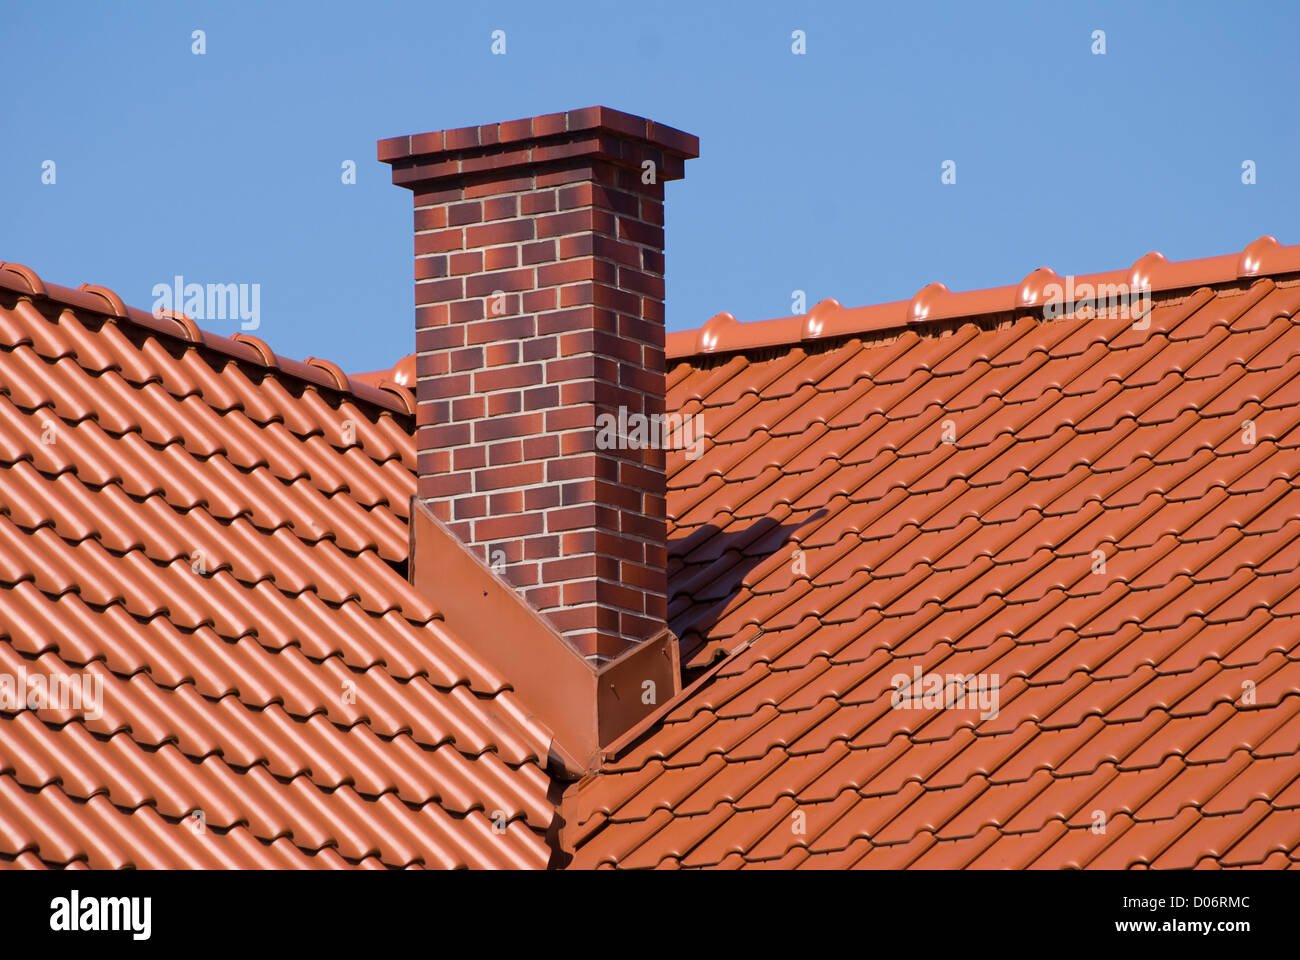 roof ridge tiles stockfotos roof ridge tiles bilder alamy. Black Bedroom Furniture Sets. Home Design Ideas